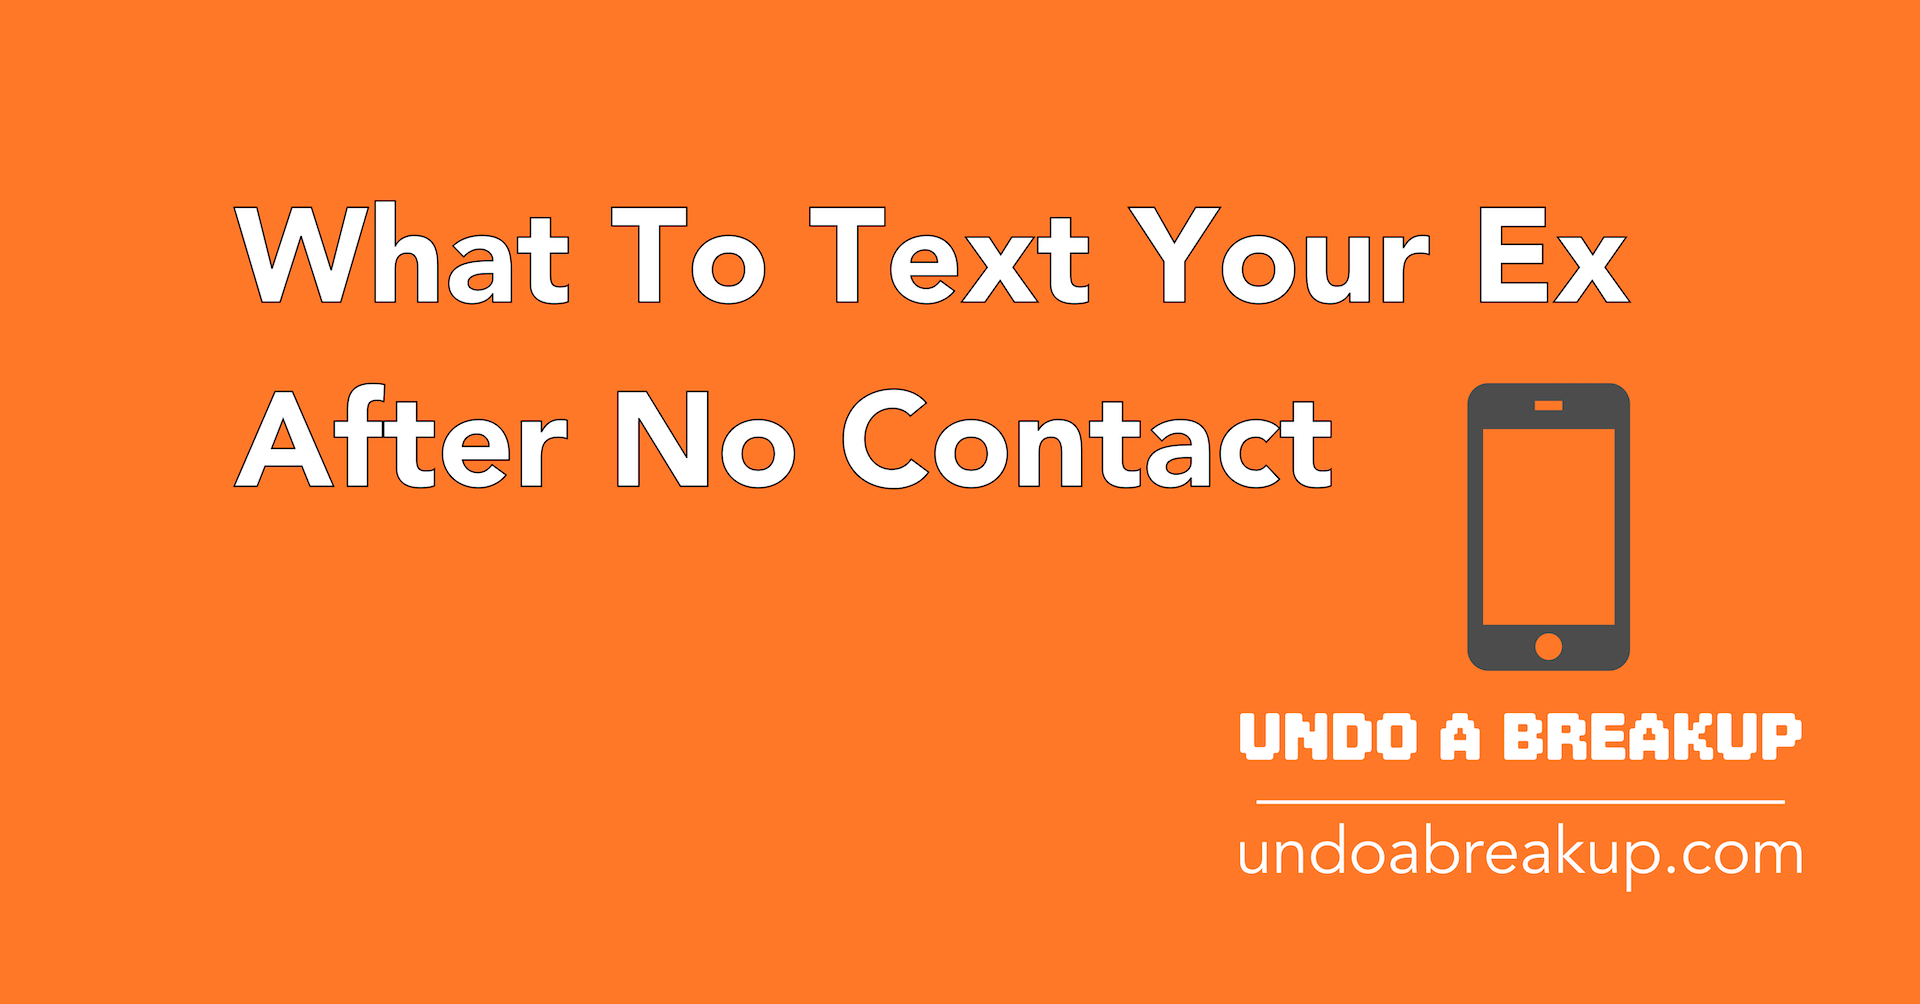 What To Text Your Ex After No Contact: Four Rules To Follow